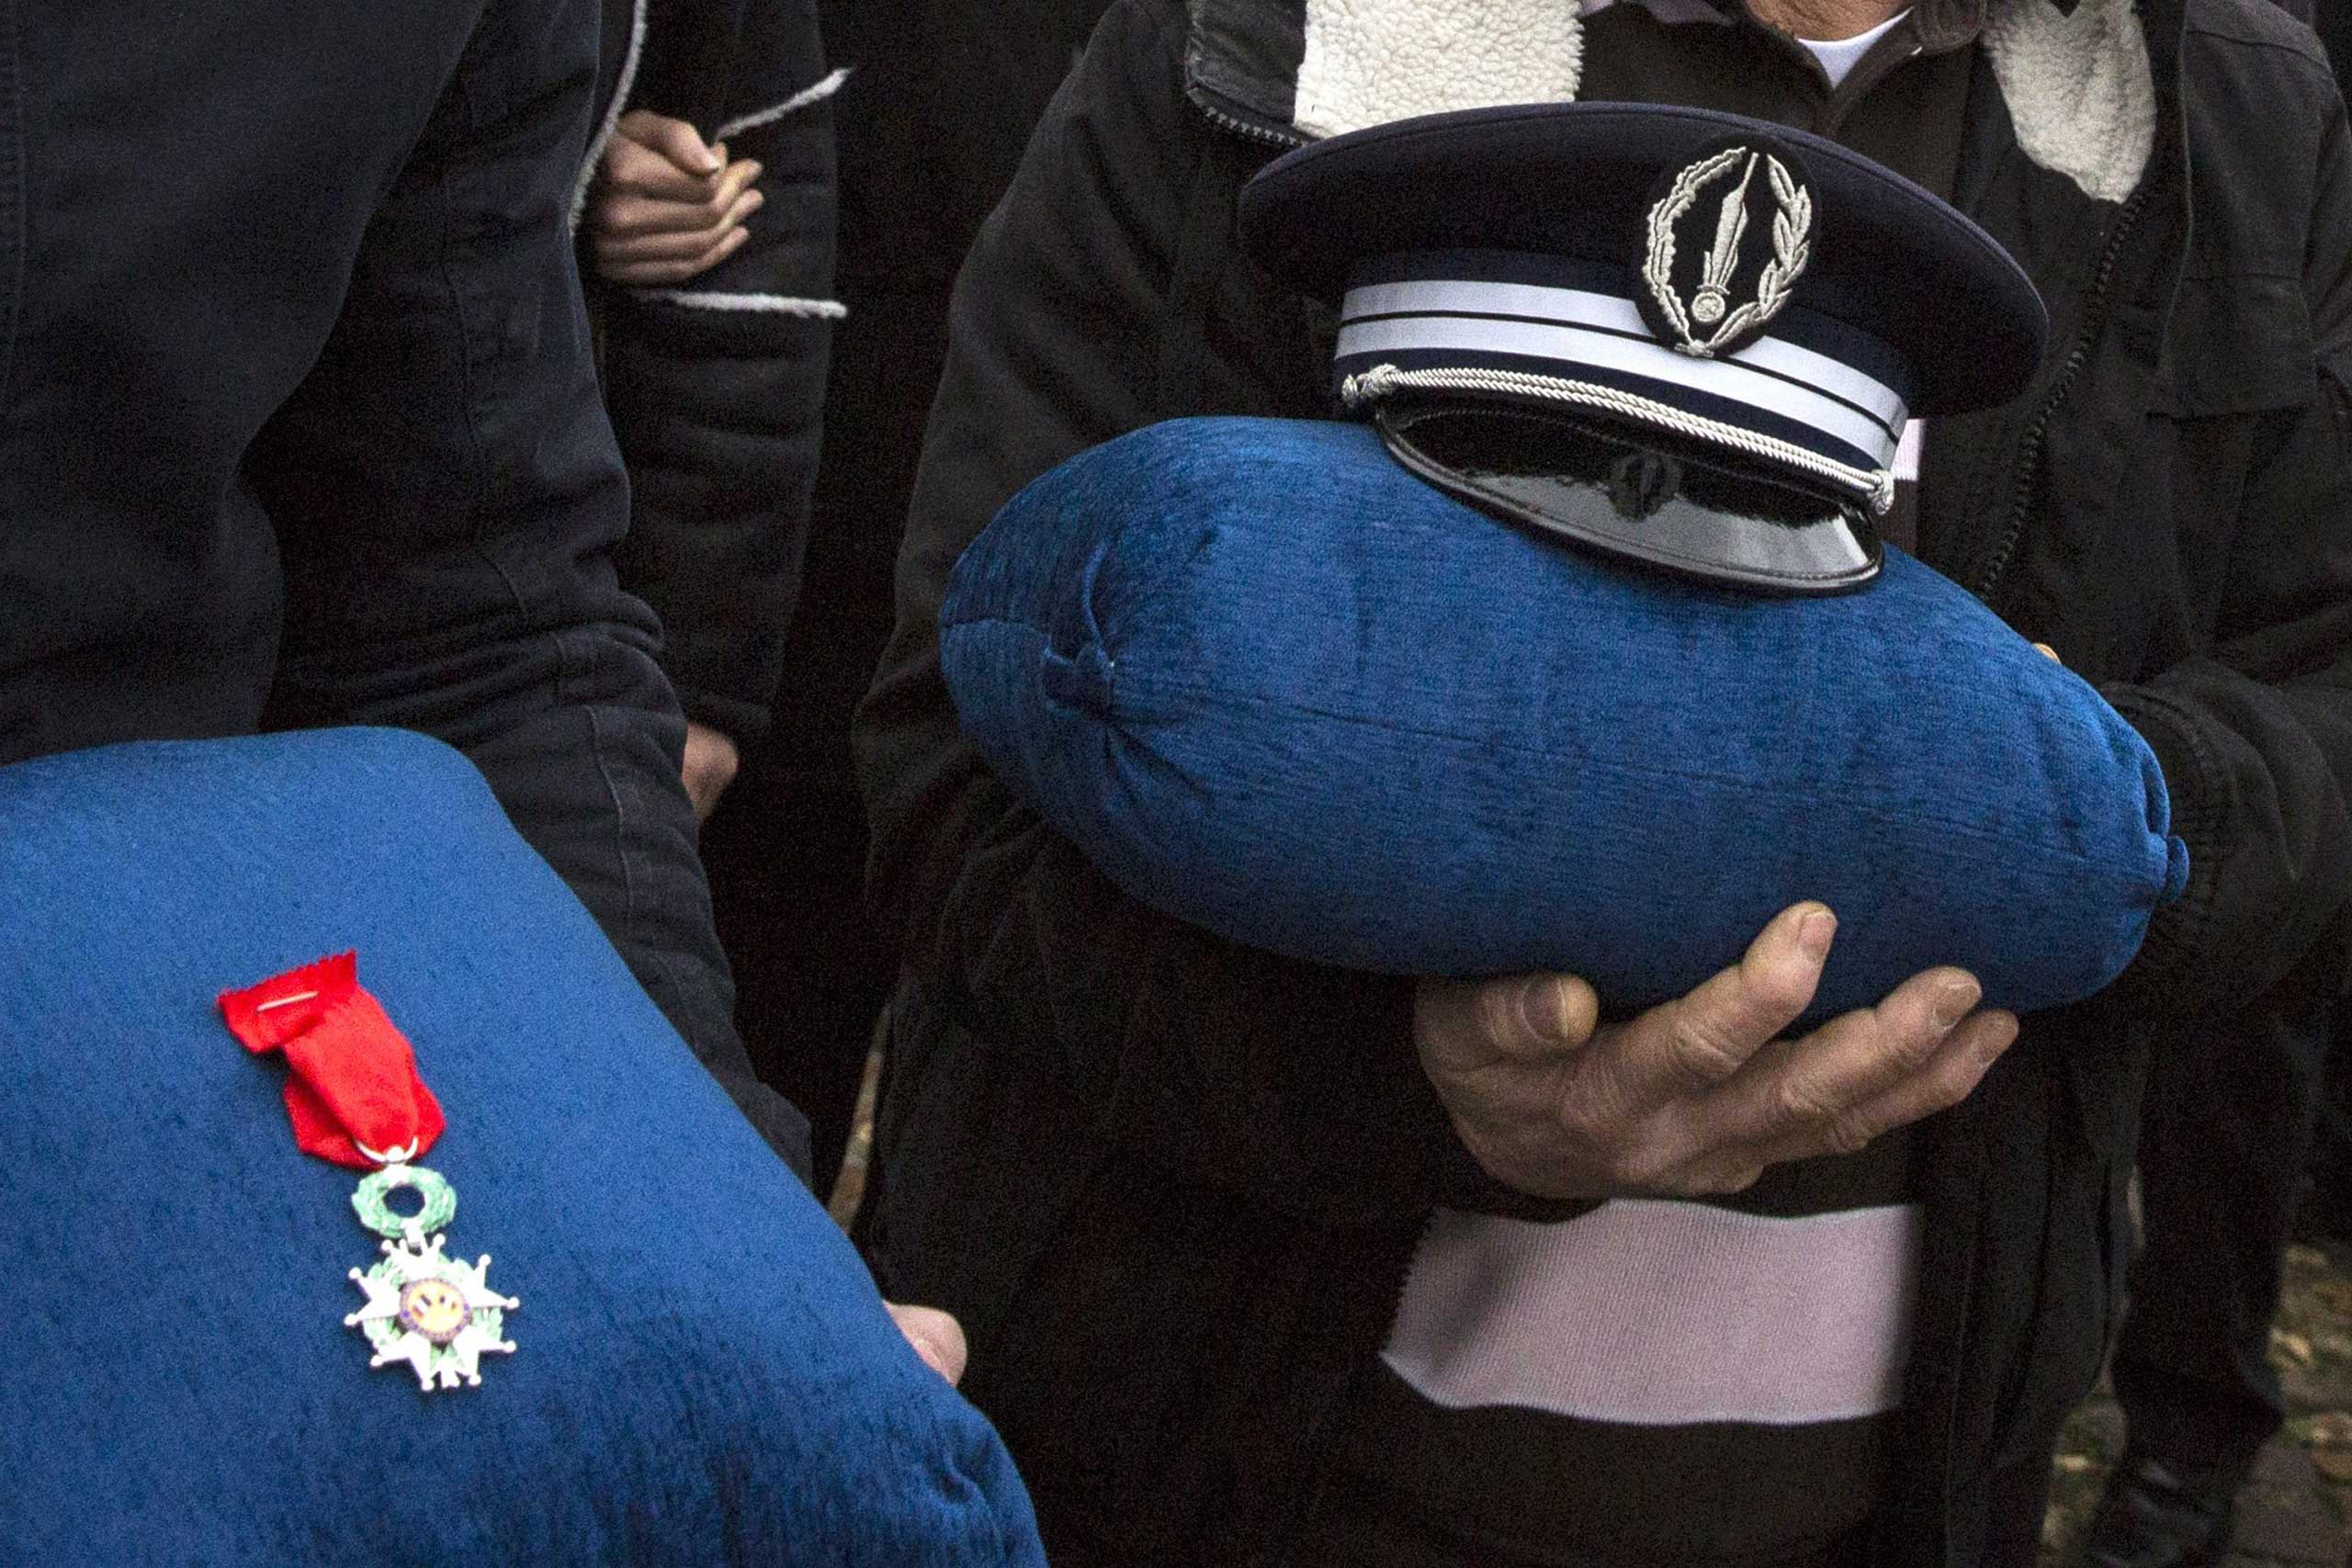 Family members of police officer Ahmed Merabet hold his cap and his Légion d'Honneur decoration during his funeral at a Muslim cemetery in Bobigny, France, on Jan. 13, 2015.